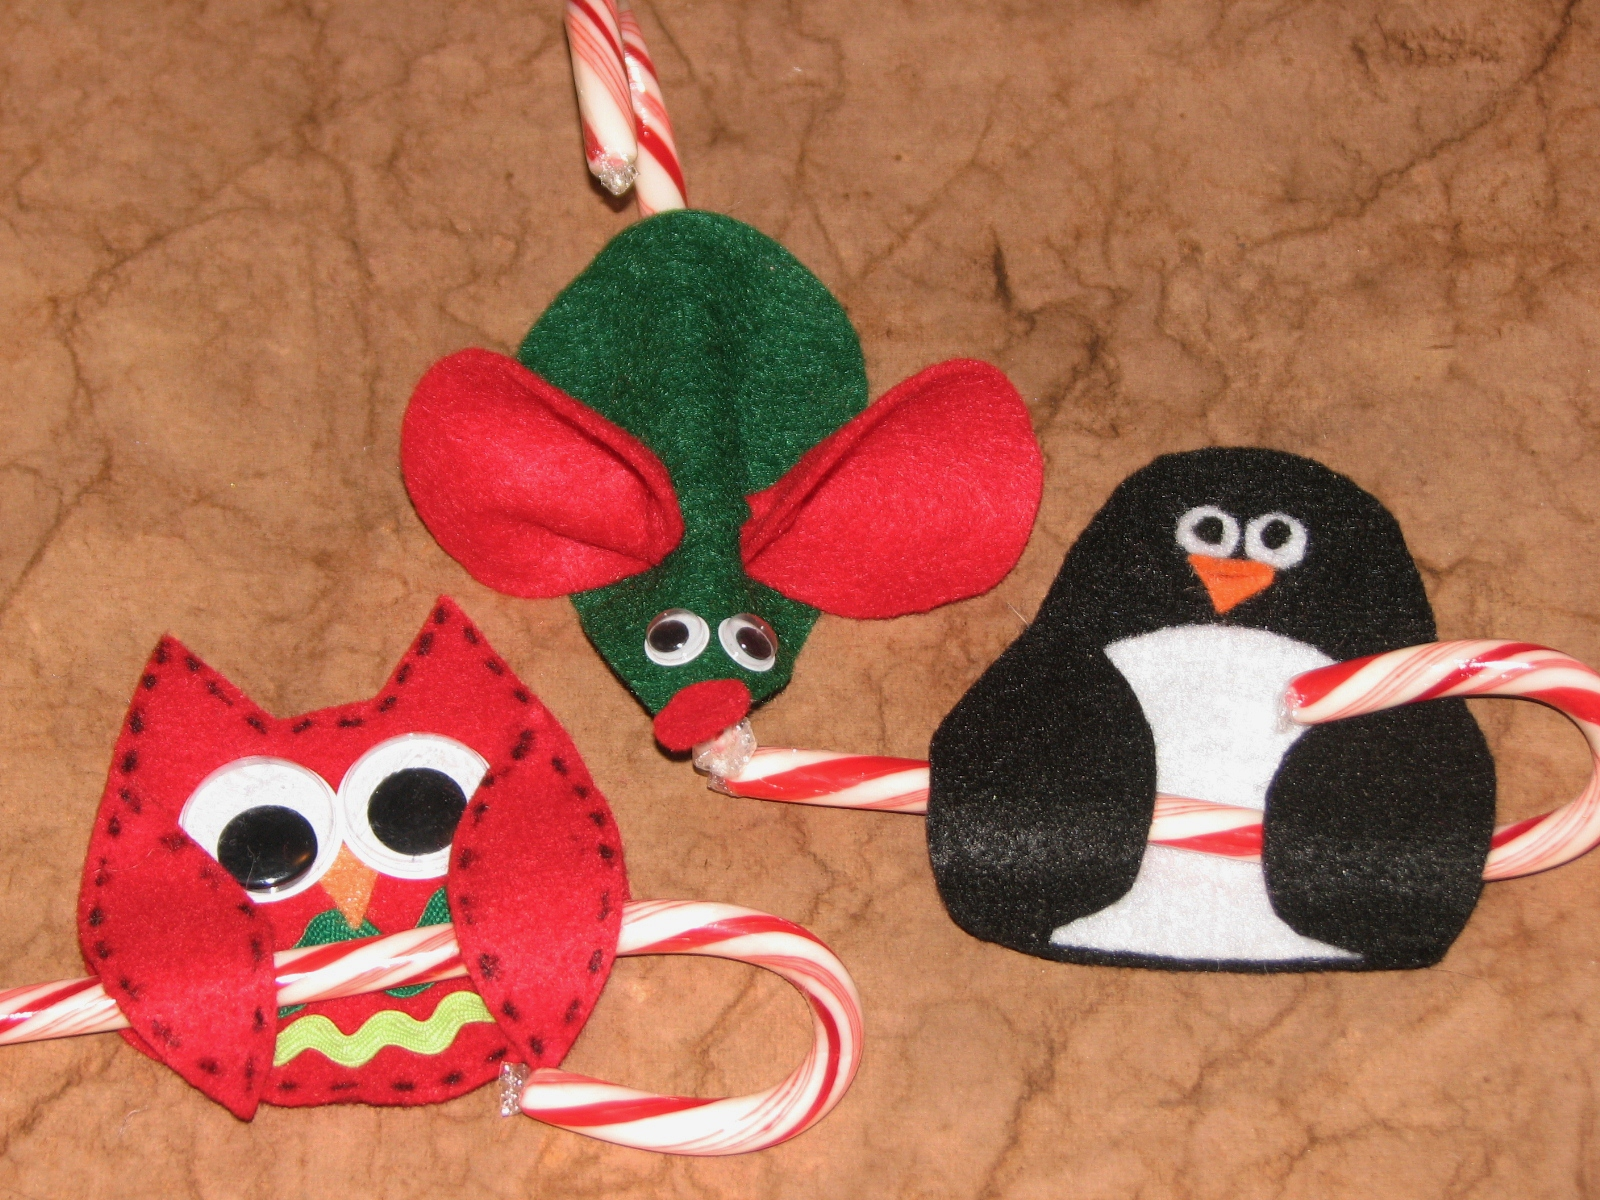 25 ideas for the holidays 12 13 amp 14 candy cane holders amp patterns